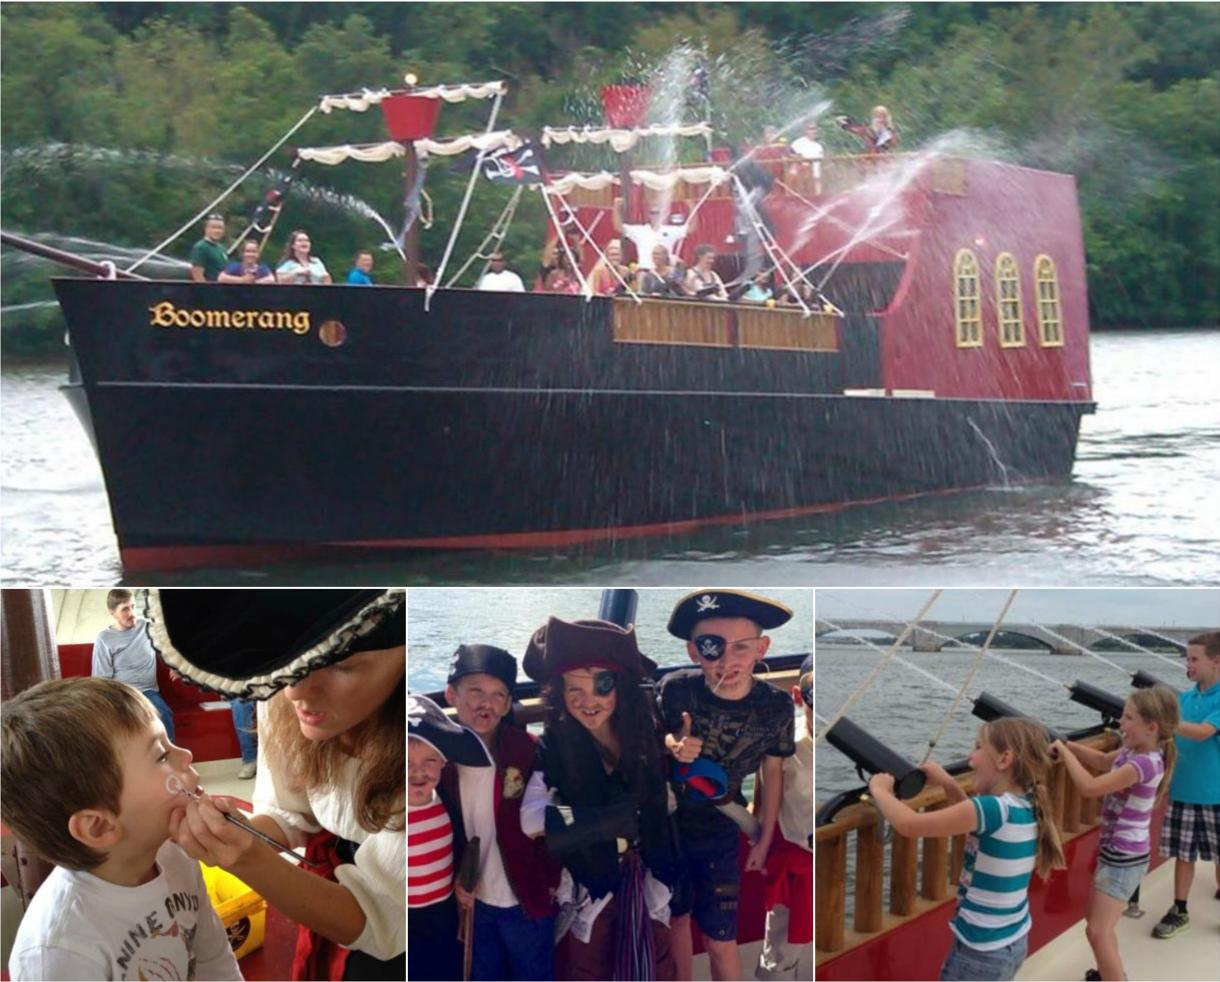 Boomerang PIRATE SHIP Family Fun Cruise